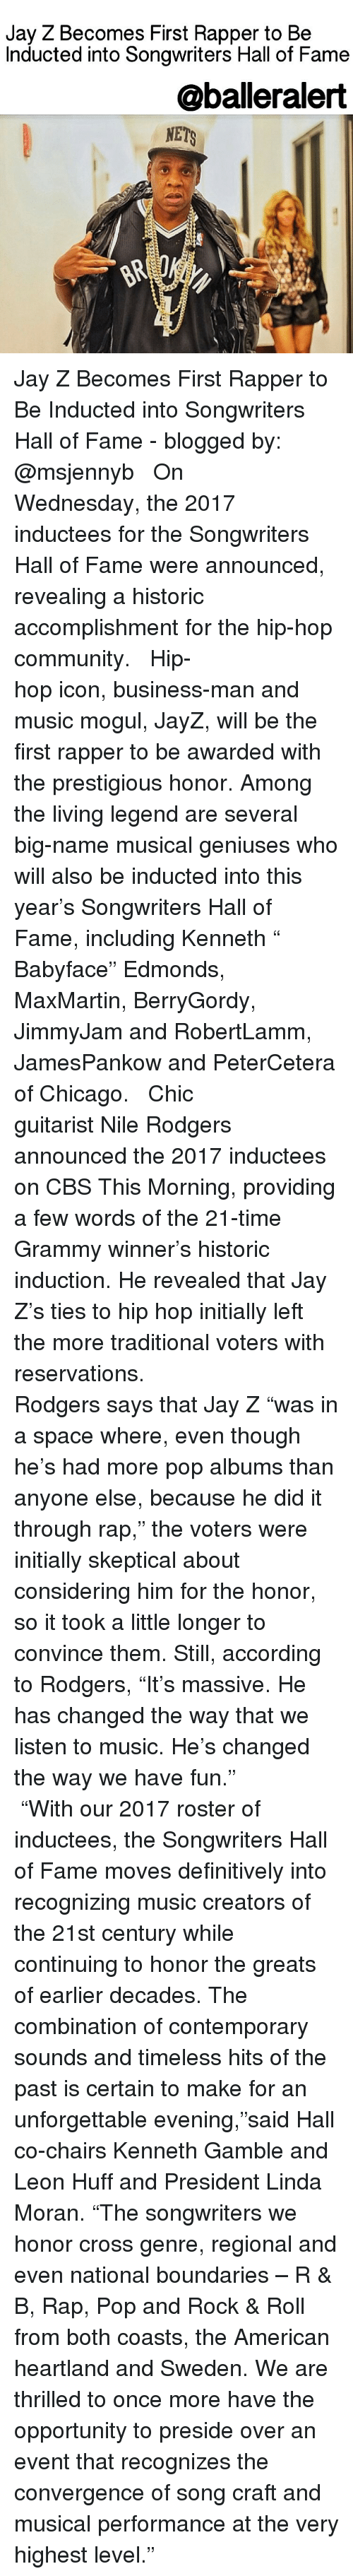 """Jay Z, Memes, and Cbs: Jay Z Becomes First Rapper to Be  Inducted into Songwriters Hall of Fame  @ball eralert  NETS Jay Z Becomes First Rapper to Be Inducted into Songwriters Hall of Fame - blogged by: @msjennyb ⠀⠀⠀⠀⠀⠀⠀⠀⠀ ⠀⠀⠀⠀⠀⠀⠀⠀⠀ On Wednesday, the 2017 inductees for the Songwriters Hall of Fame were announced, revealing a historic accomplishment for the hip-hop community. ⠀⠀⠀⠀⠀⠀⠀⠀⠀ ⠀⠀⠀⠀⠀⠀⠀⠀⠀ Hip-hop icon, business-man and music mogul, JayZ, will be the first rapper to be awarded with the prestigious honor. Among the living legend are several big-name musical geniuses who will also be inducted into this year's Songwriters Hall of Fame, including Kenneth """" Babyface"""" Edmonds, MaxMartin, BerryGordy, JimmyJam and RobertLamm, JamesPankow and PeterCetera of Chicago. ⠀⠀⠀⠀⠀⠀⠀⠀⠀ ⠀⠀⠀⠀⠀⠀⠀⠀⠀ Chic guitarist Nile Rodgers announced the 2017 inductees on CBS This Morning, providing a few words of the 21-time Grammy winner's historic induction. He revealed that Jay Z's ties to hip hop initially left the more traditional voters with reservations. ⠀⠀⠀⠀⠀⠀⠀⠀⠀ ⠀⠀⠀⠀⠀⠀⠀⠀⠀ Rodgers says that Jay Z """"was in a space where, even though he's had more pop albums than anyone else, because he did it through rap,"""" the voters were initially skeptical about considering him for the honor, so it took a little longer to convince them. Still, according to Rodgers, """"It's massive. He has changed the way that we listen to music. He's changed the way we have fun."""" ⠀⠀⠀⠀⠀⠀⠀⠀⠀ ⠀⠀⠀⠀⠀⠀⠀⠀⠀ """"With our 2017 roster of inductees, the Songwriters Hall of Fame moves definitively into recognizing music creators of the 21st century while continuing to honor the greats of earlier decades. The combination of contemporary sounds and timeless hits of the past is certain to make for an unforgettable evening,""""said Hall co-chairs Kenneth Gamble and Leon Huff and President Linda Moran. """"The songwriters we honor cross genre, regional and even national boundaries – R & B, Rap, Pop and Rock & Roll from both coasts, the American heart"""